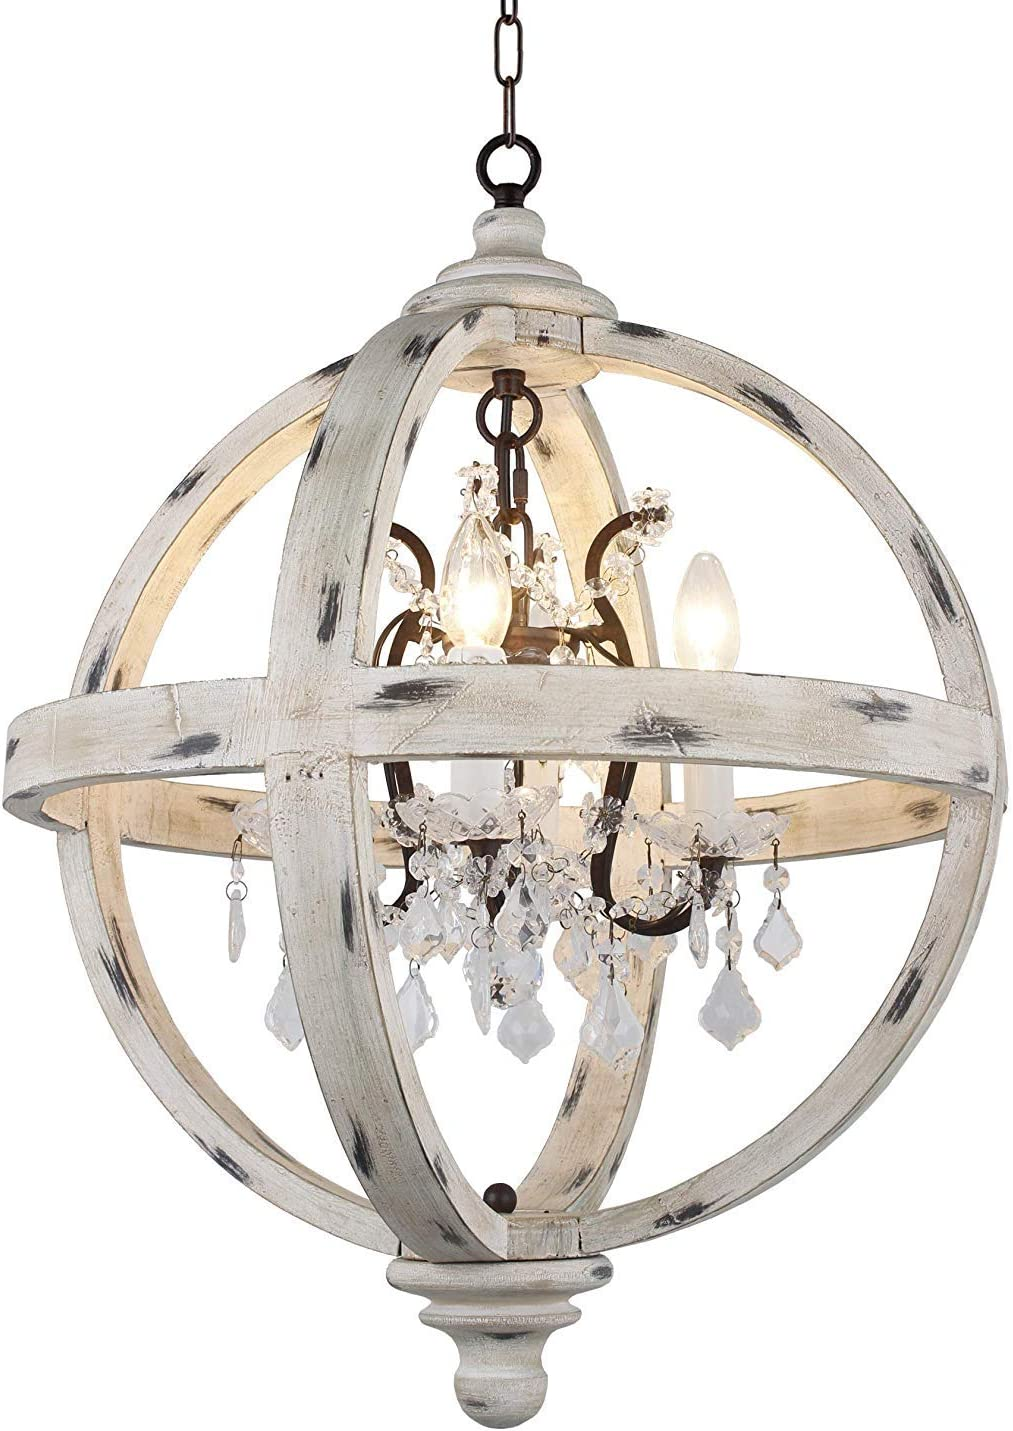 Decomust Farmhouse 4 Light Candle Style Globe Clear Glass Crystals In Withered White Wood Finish Orb Chandelier Wood Finish Antique Metal Crystal Inside White Amazon Com